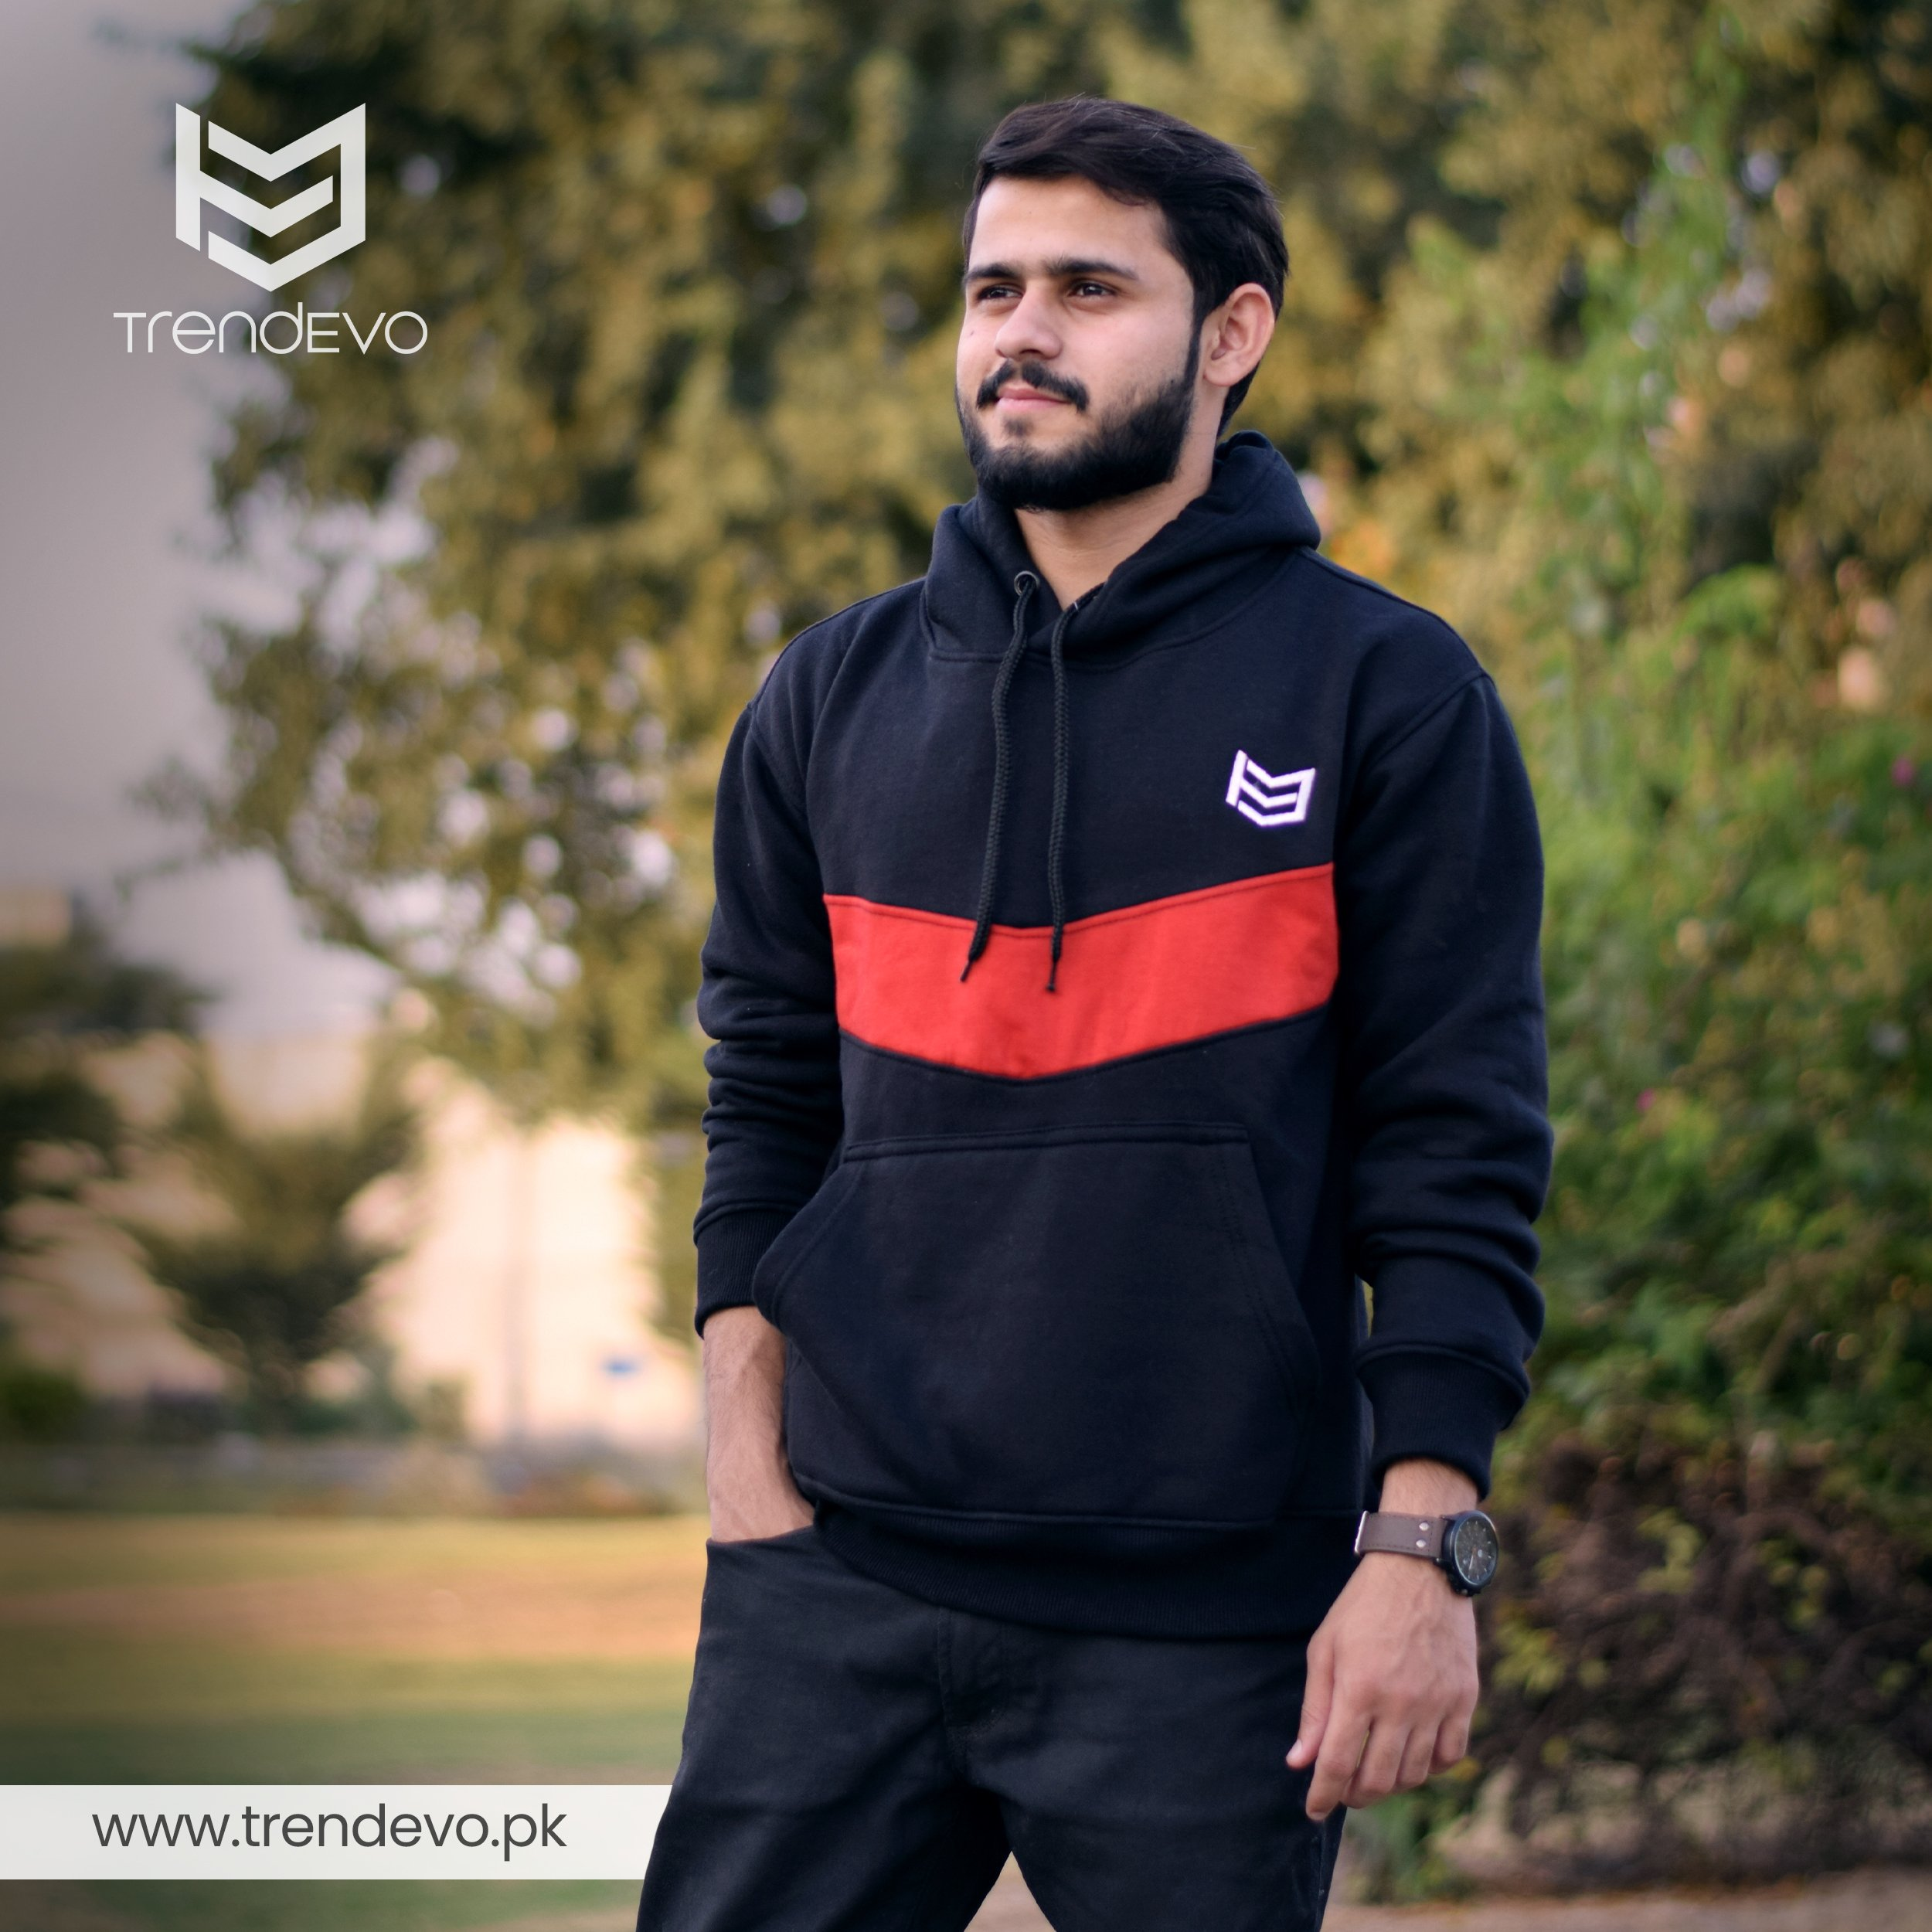 Black and Red TrendEvo Hoodie Photo